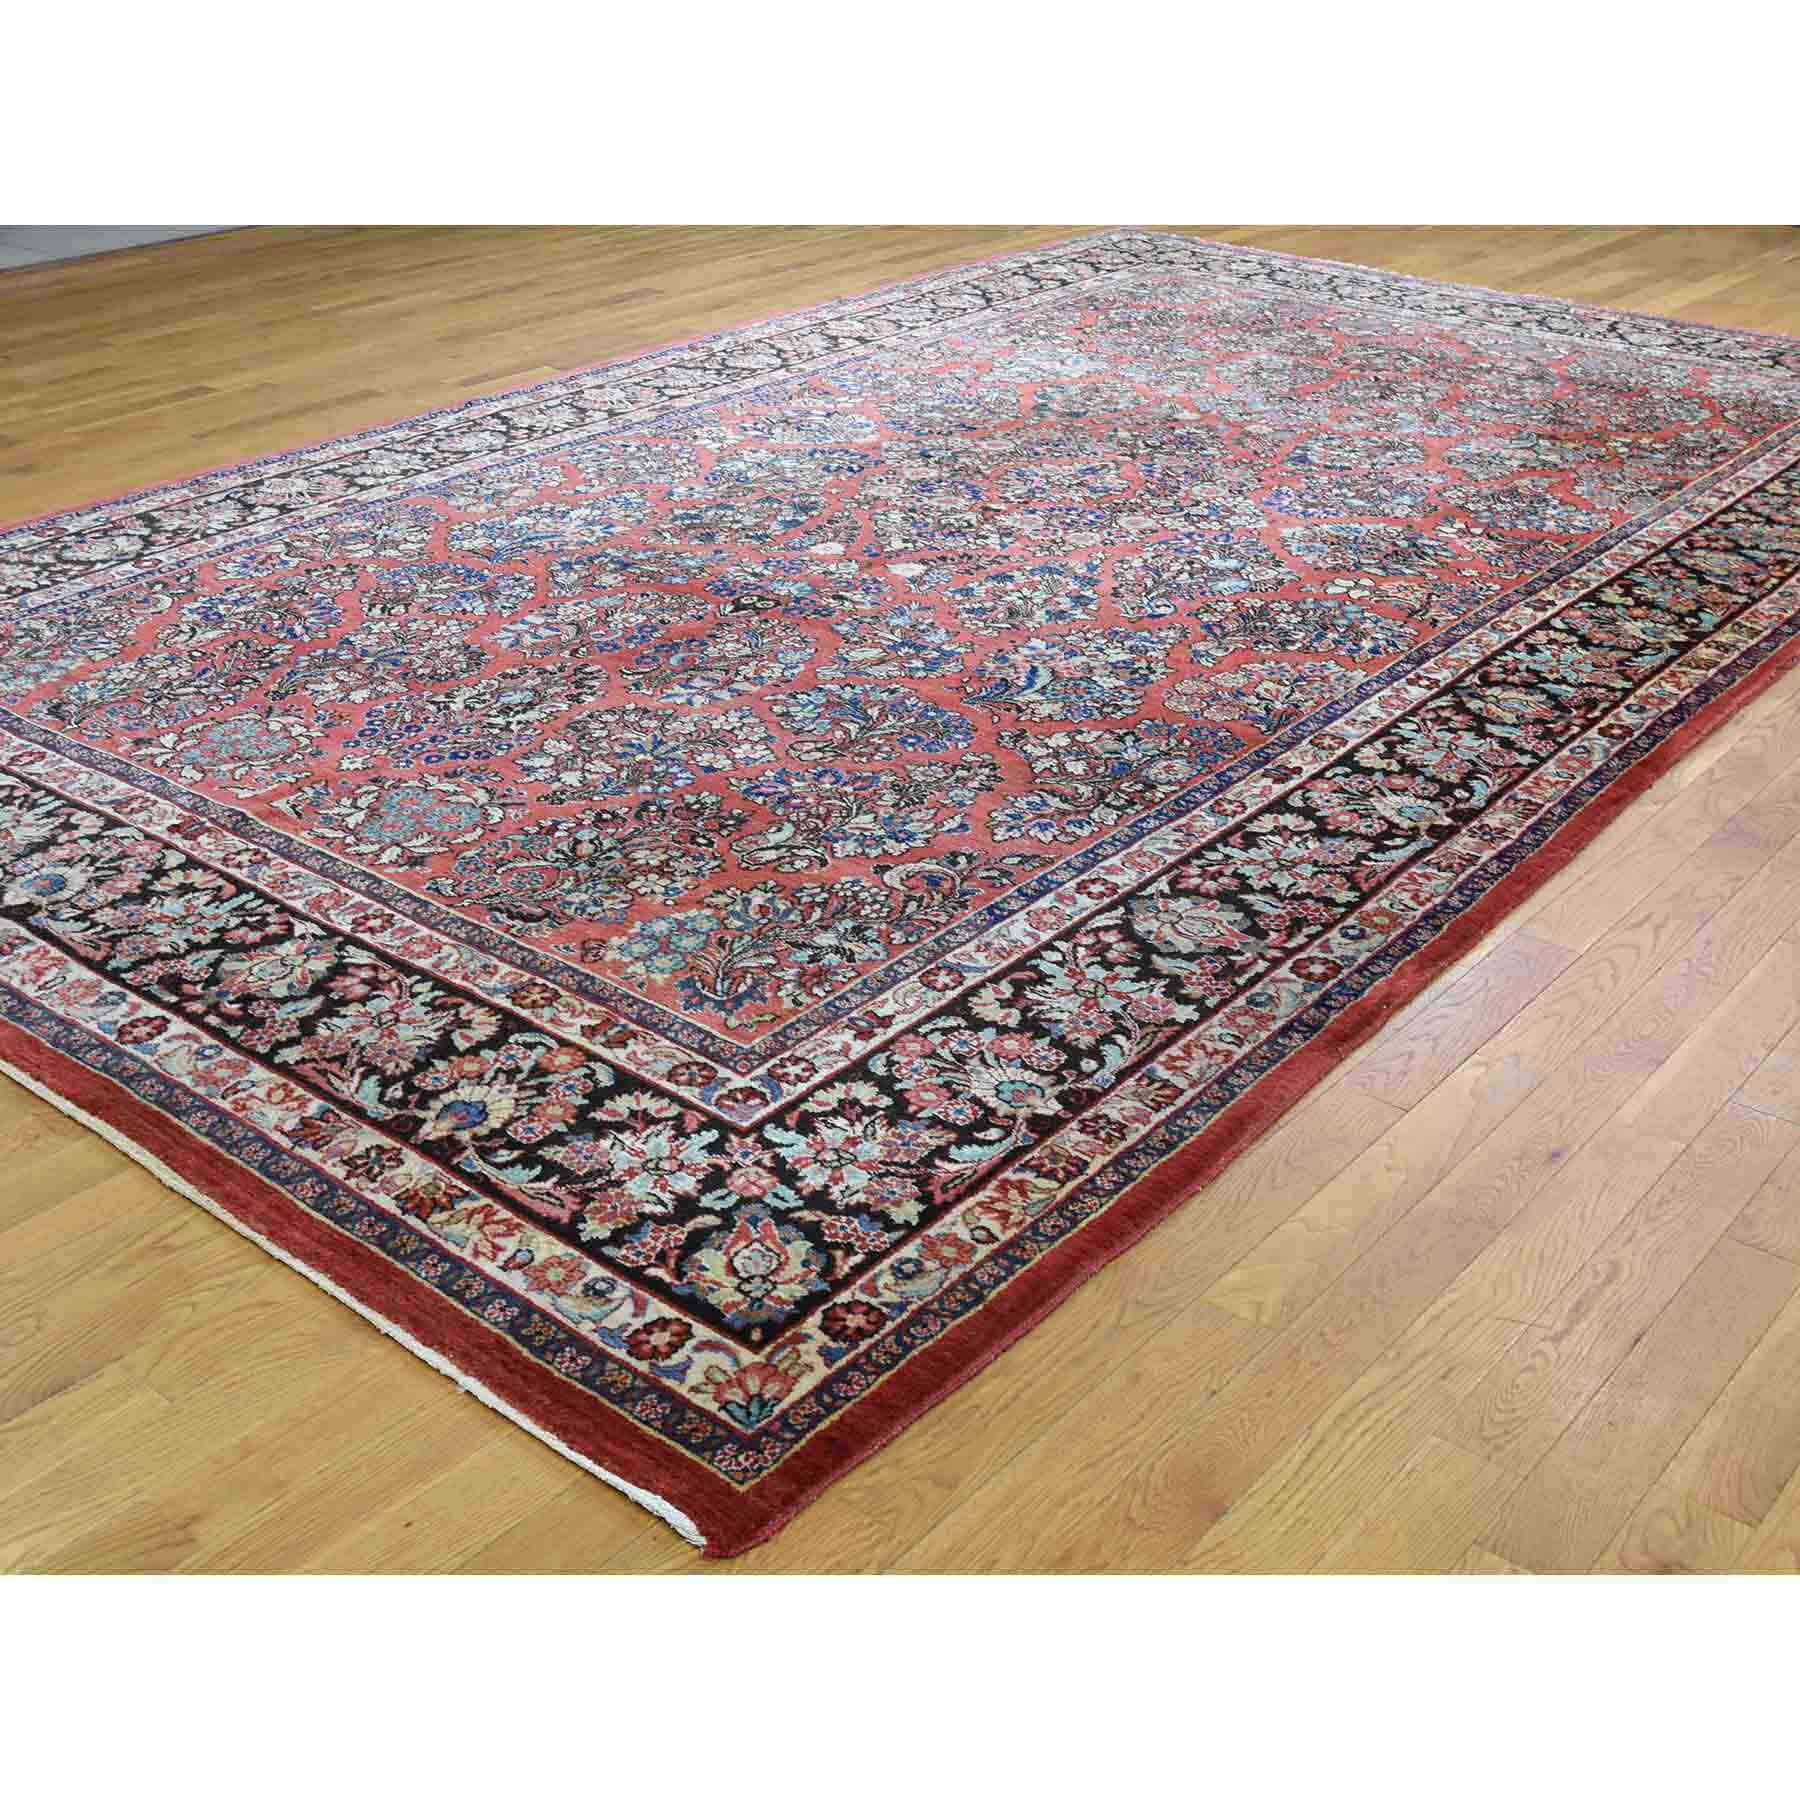 Antique-Hand-Knotted-Rug-205900